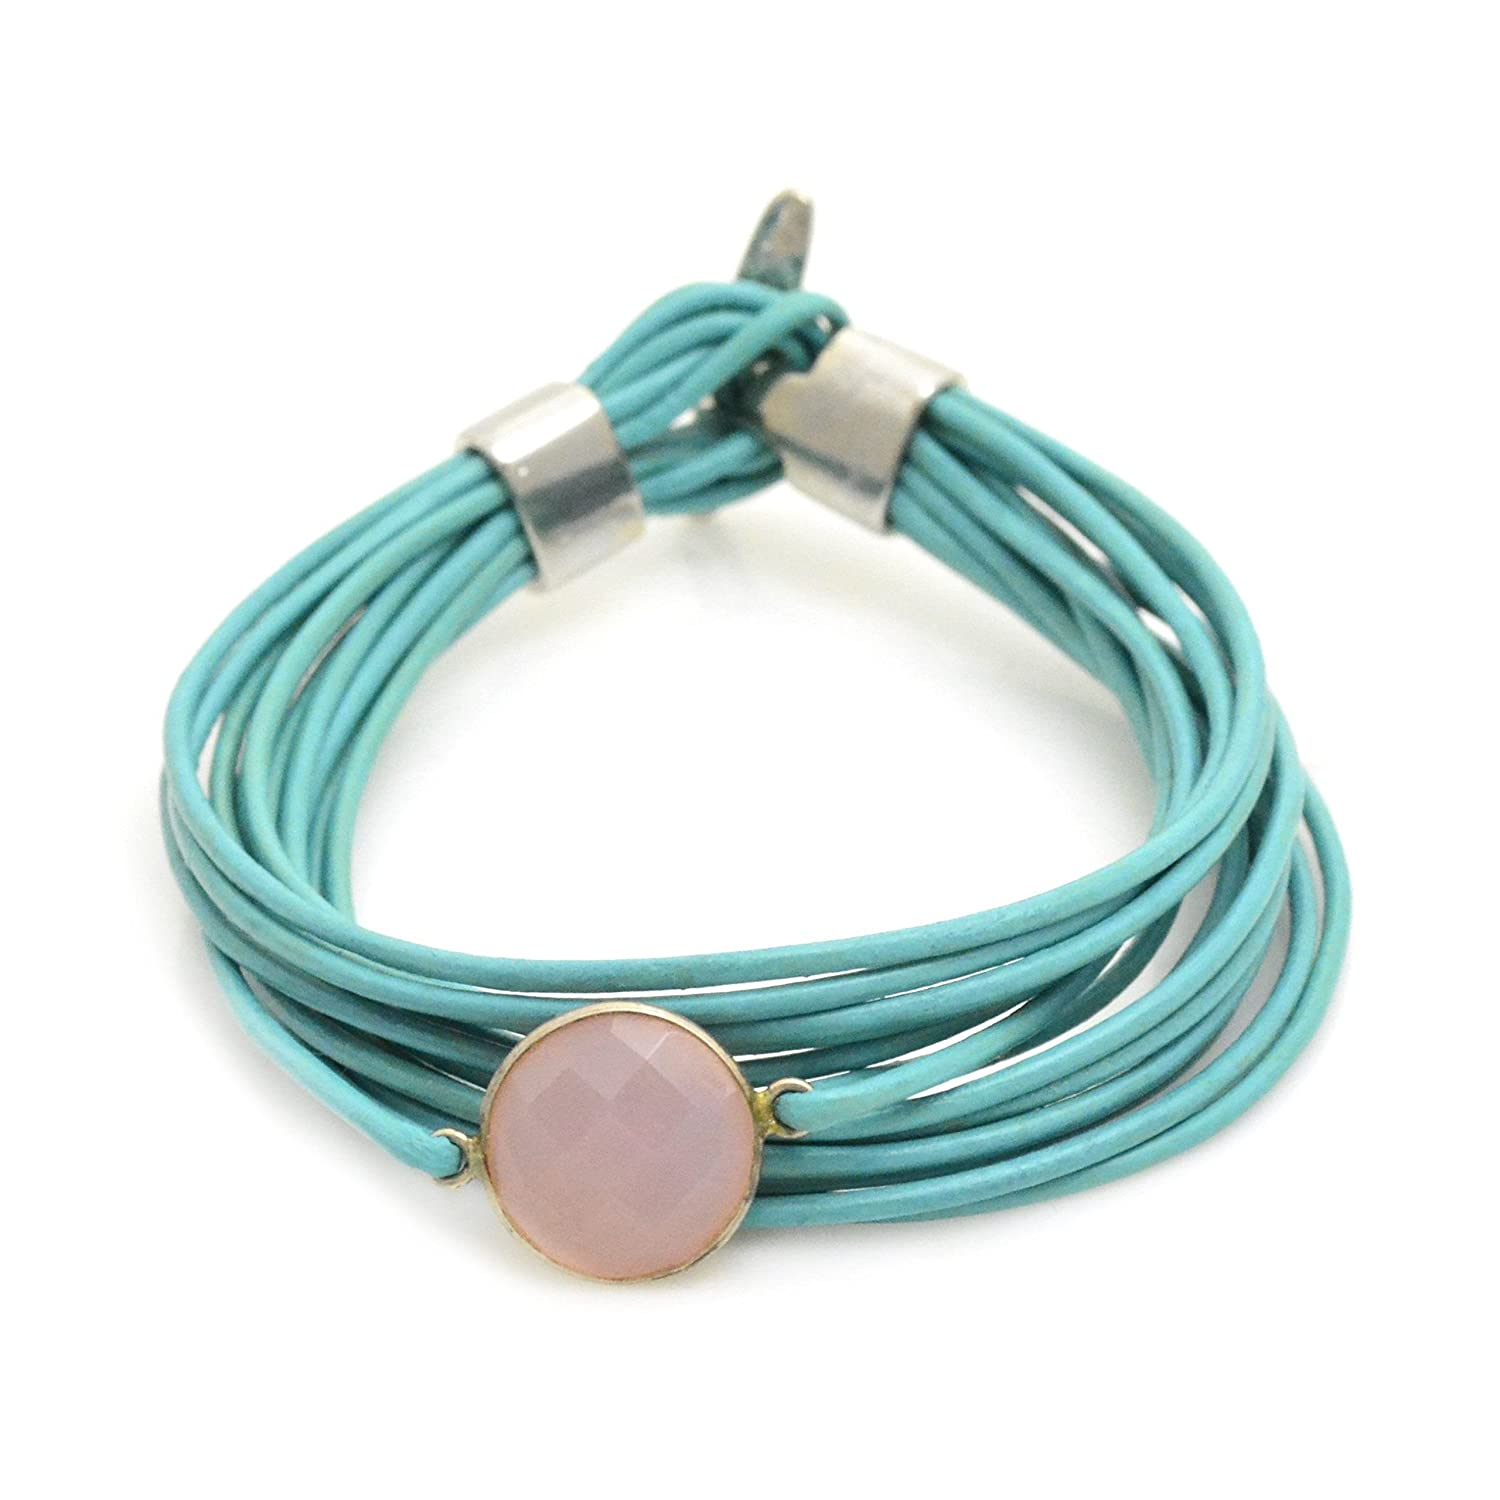 Lisa Robin Jewelry Bezel Faceted Gemstone Leather Bracelet in Teal and Pink Chalcedony